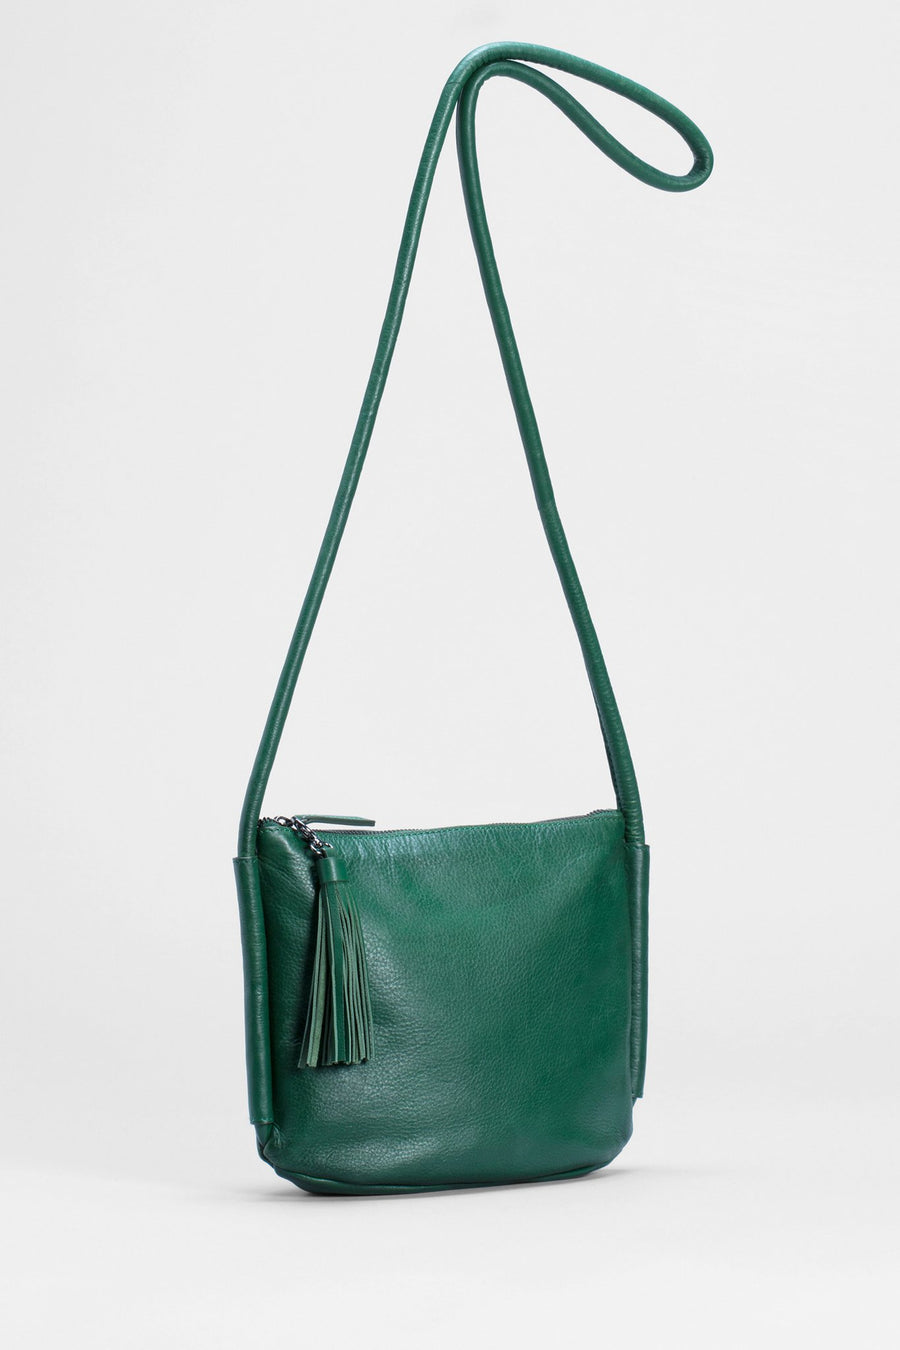 Elk Forbi small bag - Shop Online At Mookah - mookah.com.au